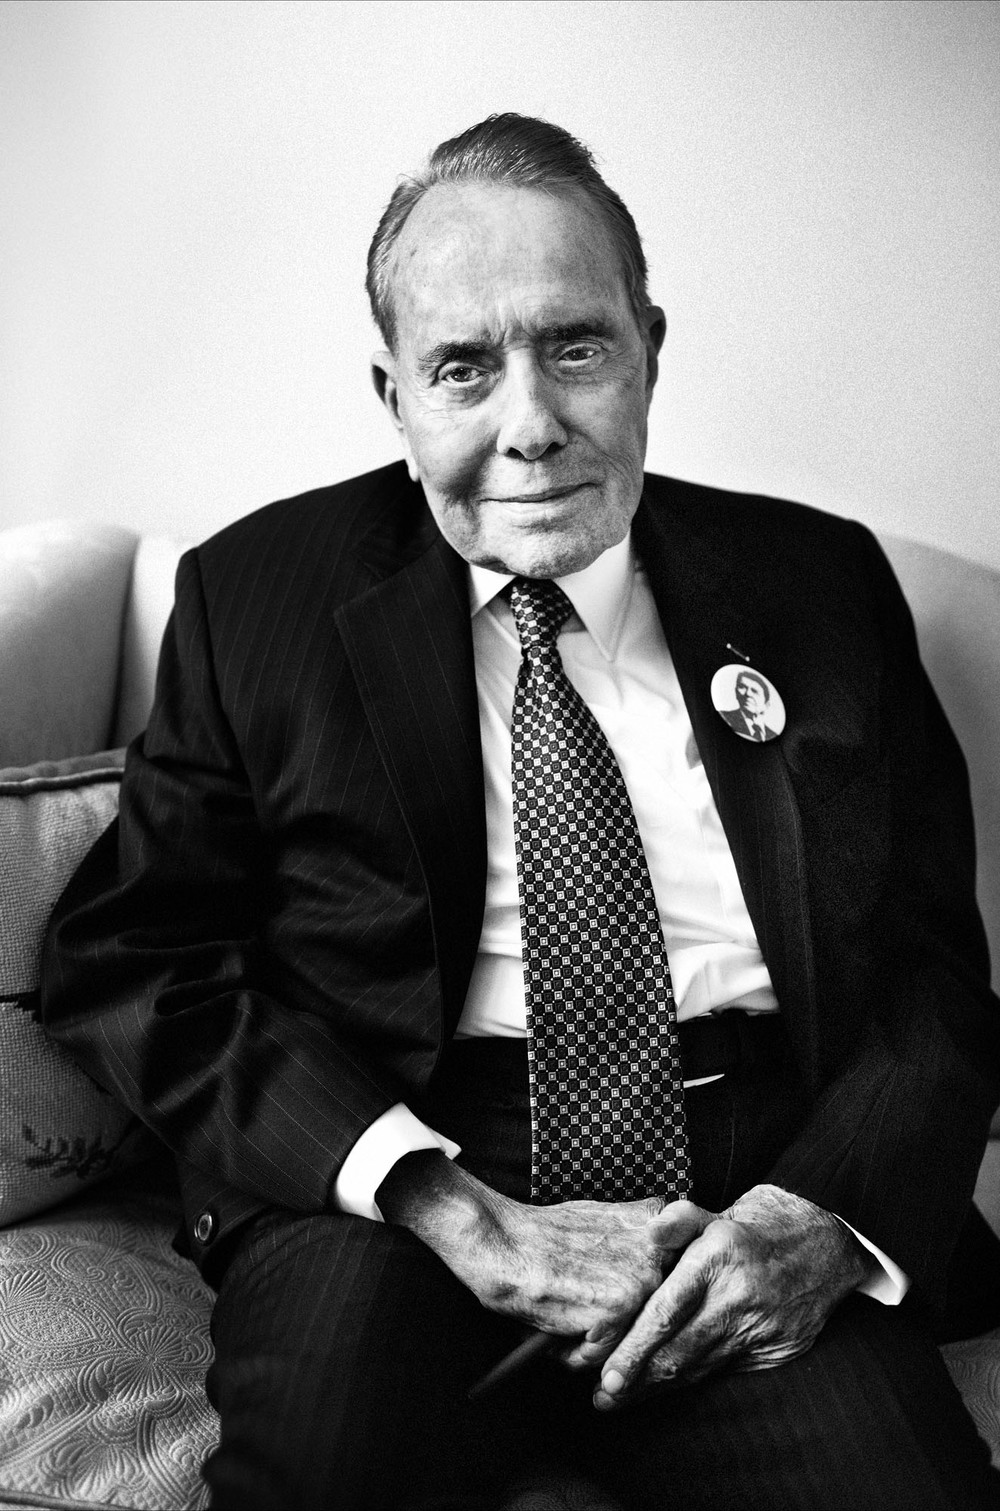 Bob Dole - Washington, D.C.